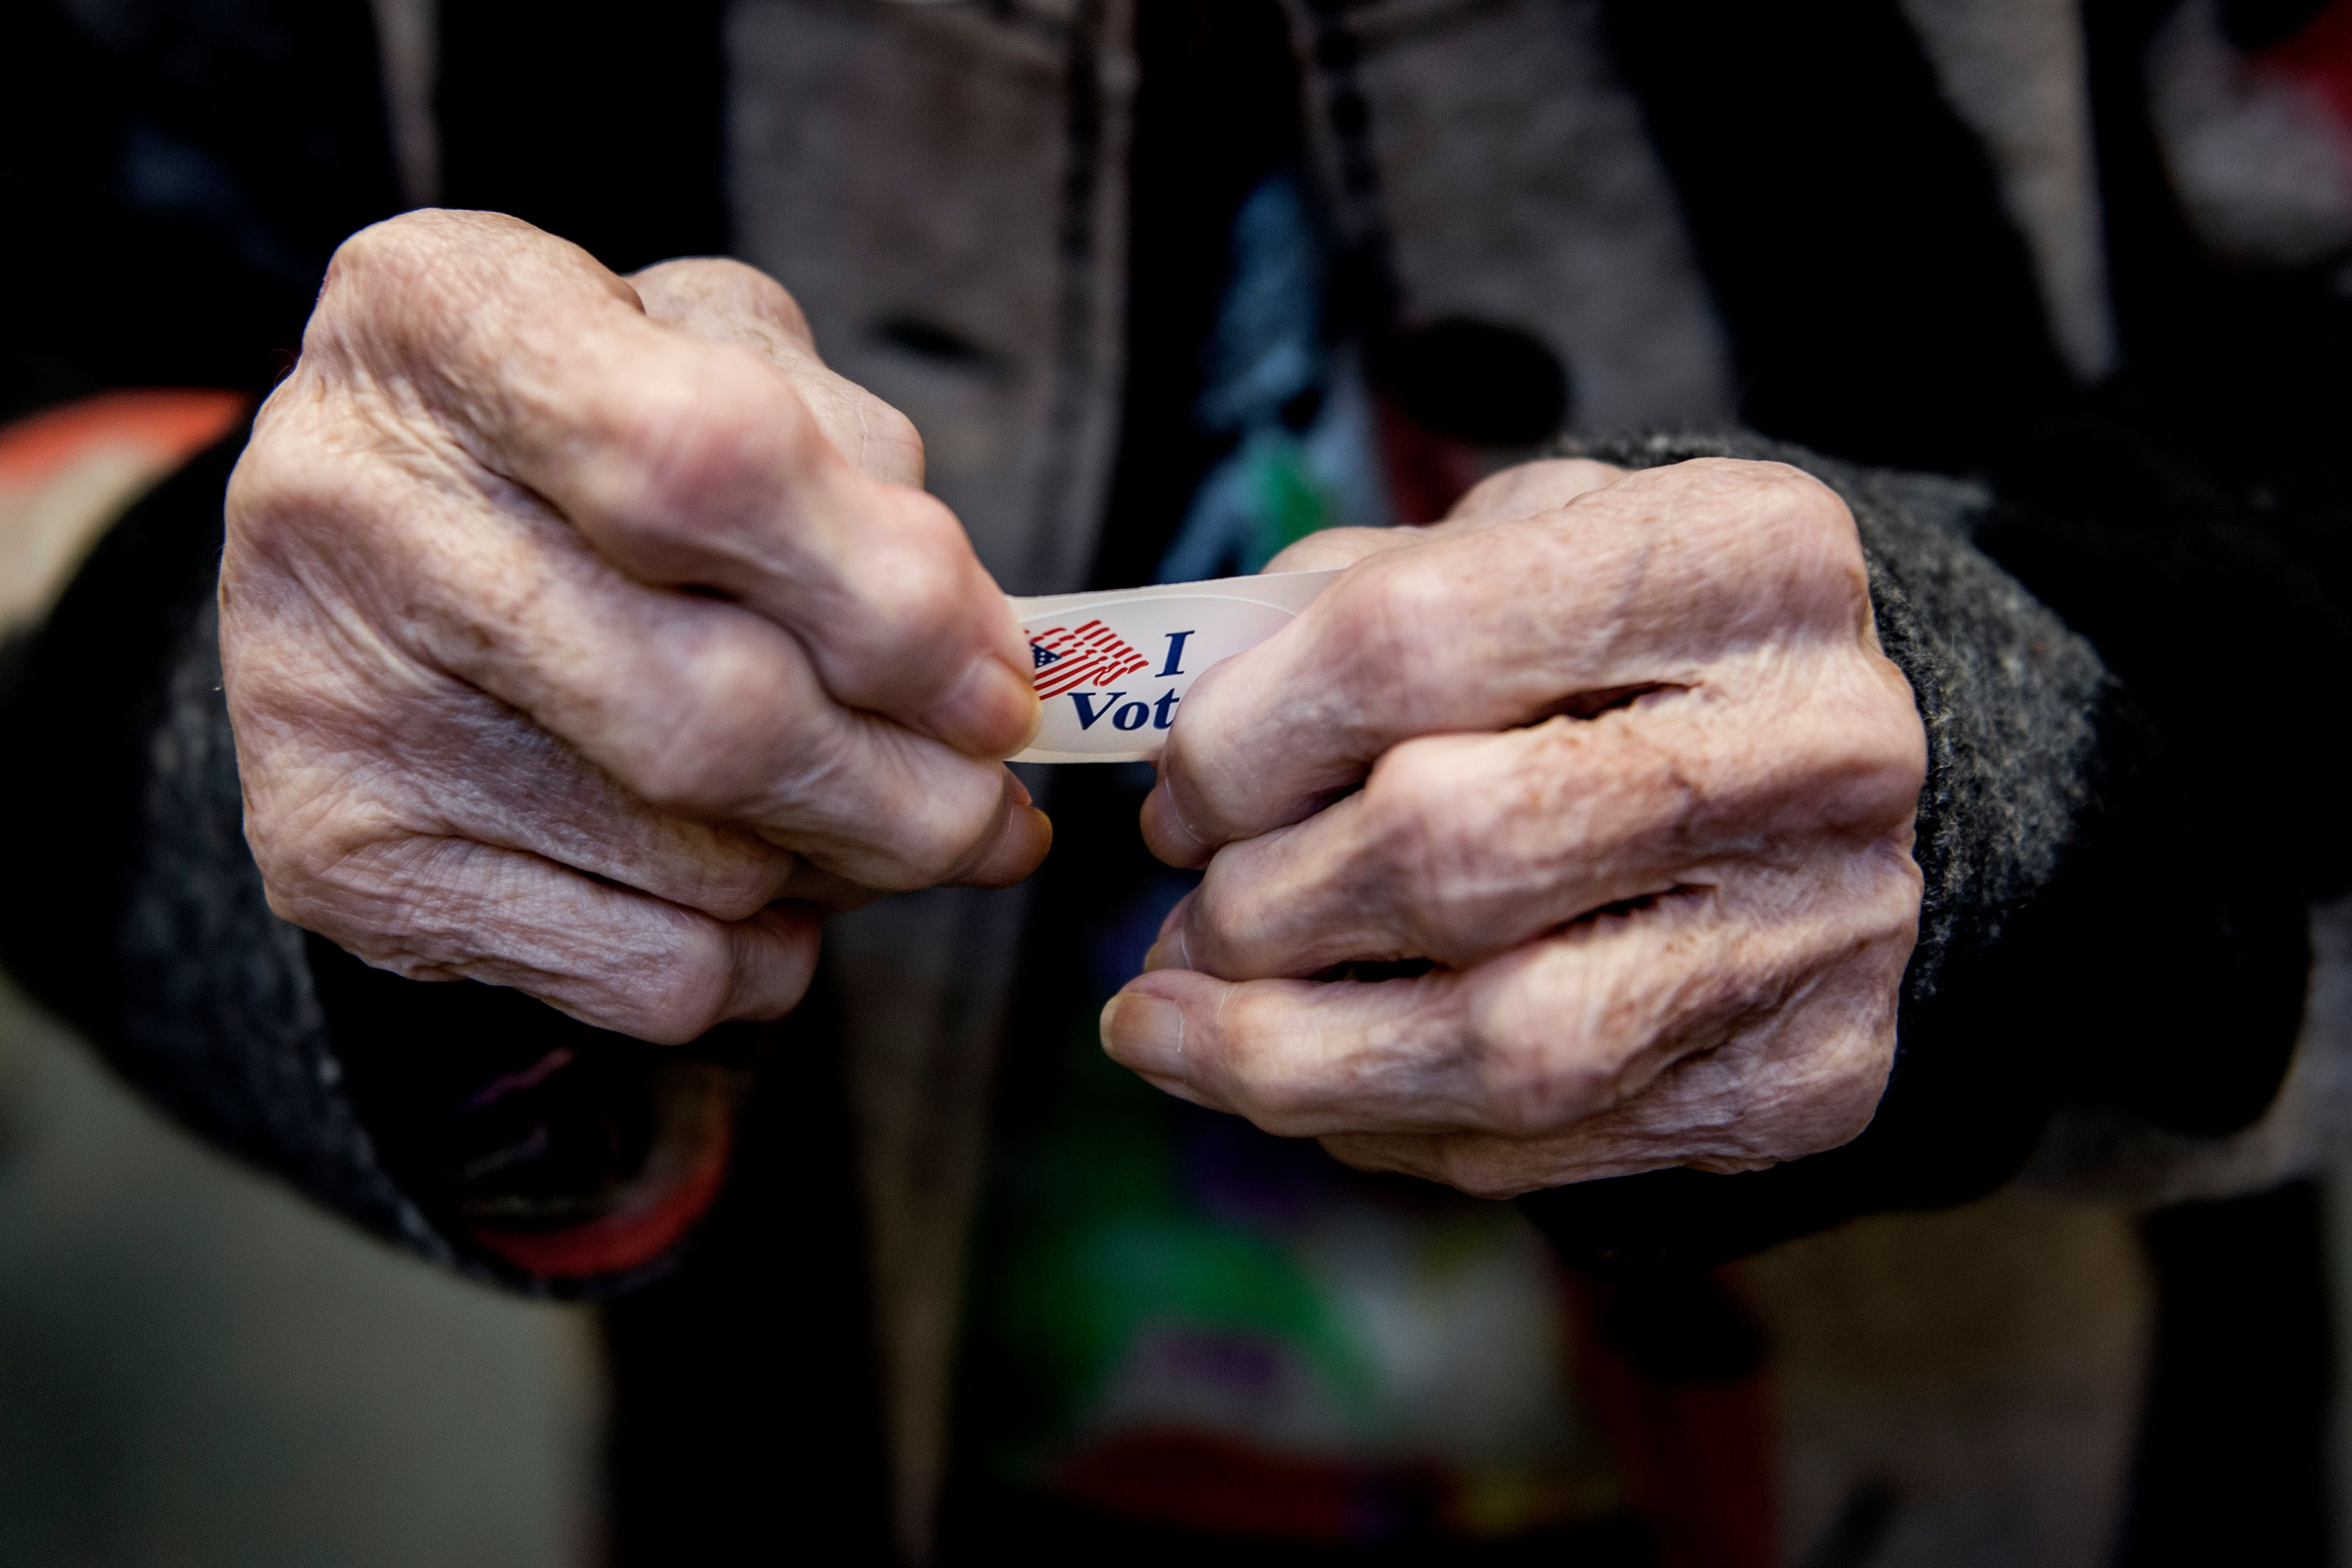 """<p>Iva Woke, a 100-year-old resident living in Chestertown, Md., holds her """"I voted"""" sticker after casting her ballot at the Kent County Public Library in Chestertown during Maryland's early voting on Oct. 5, 2018. (Photo by Jim WAatson/AFP/Getty Images) </p>"""